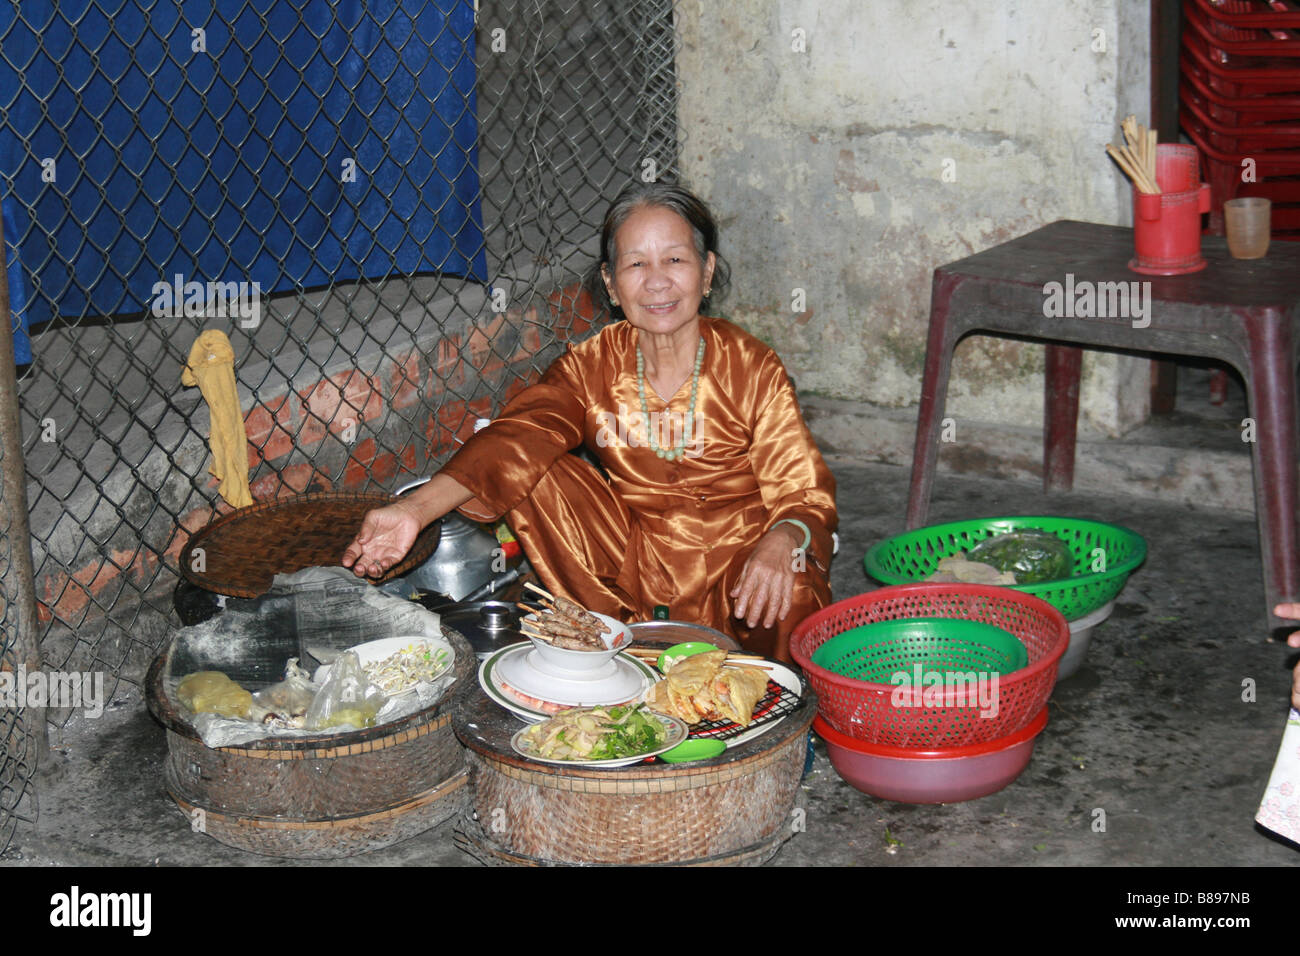 Photograph of a lady and her stall at a market in Hoi Ann Vietnam - Stock Image